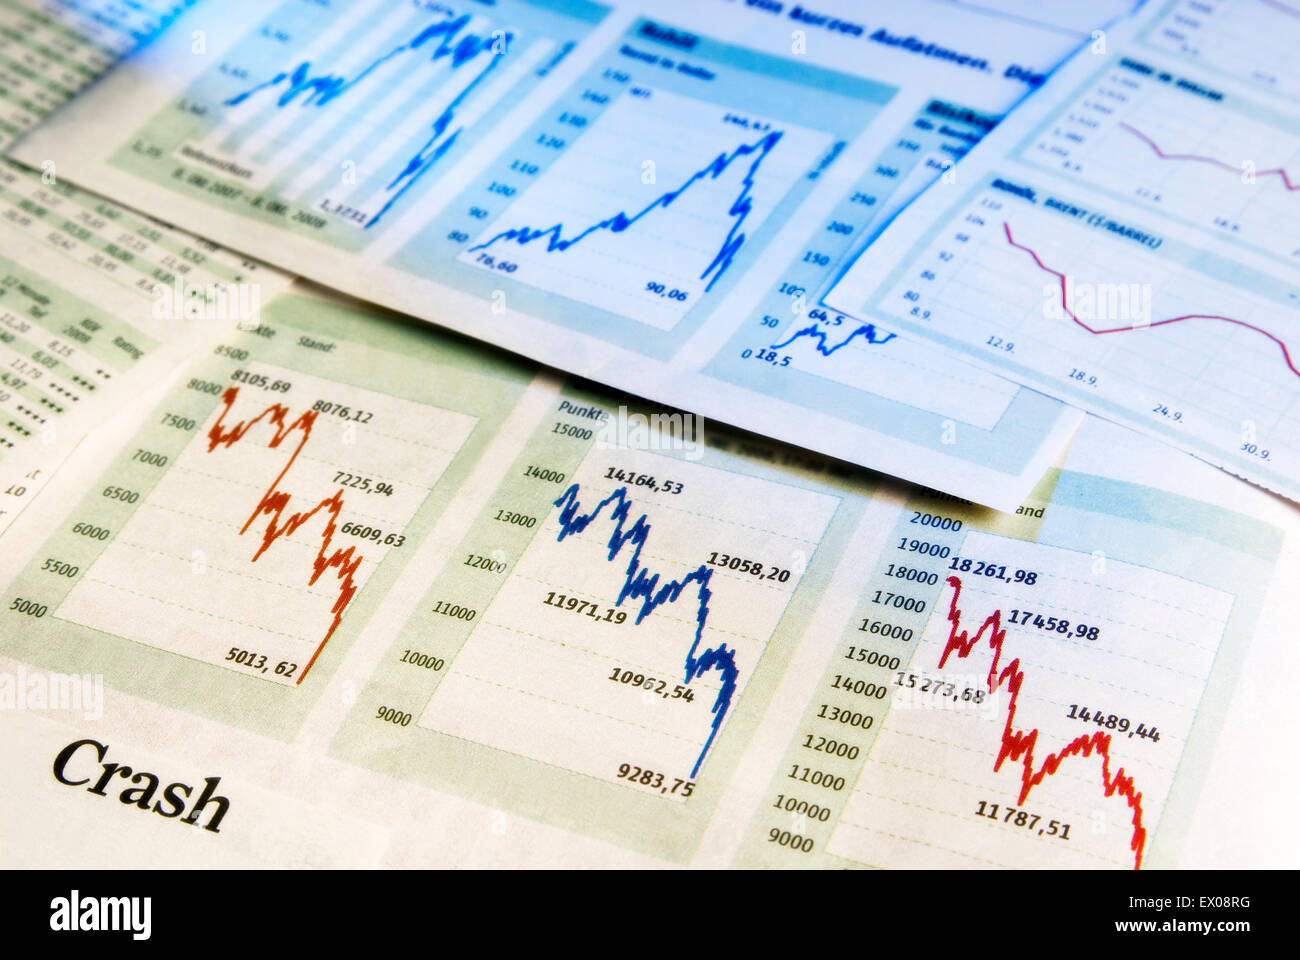 Charts show falling share prices as a symbol for a crash in the stock market. - Stock Image